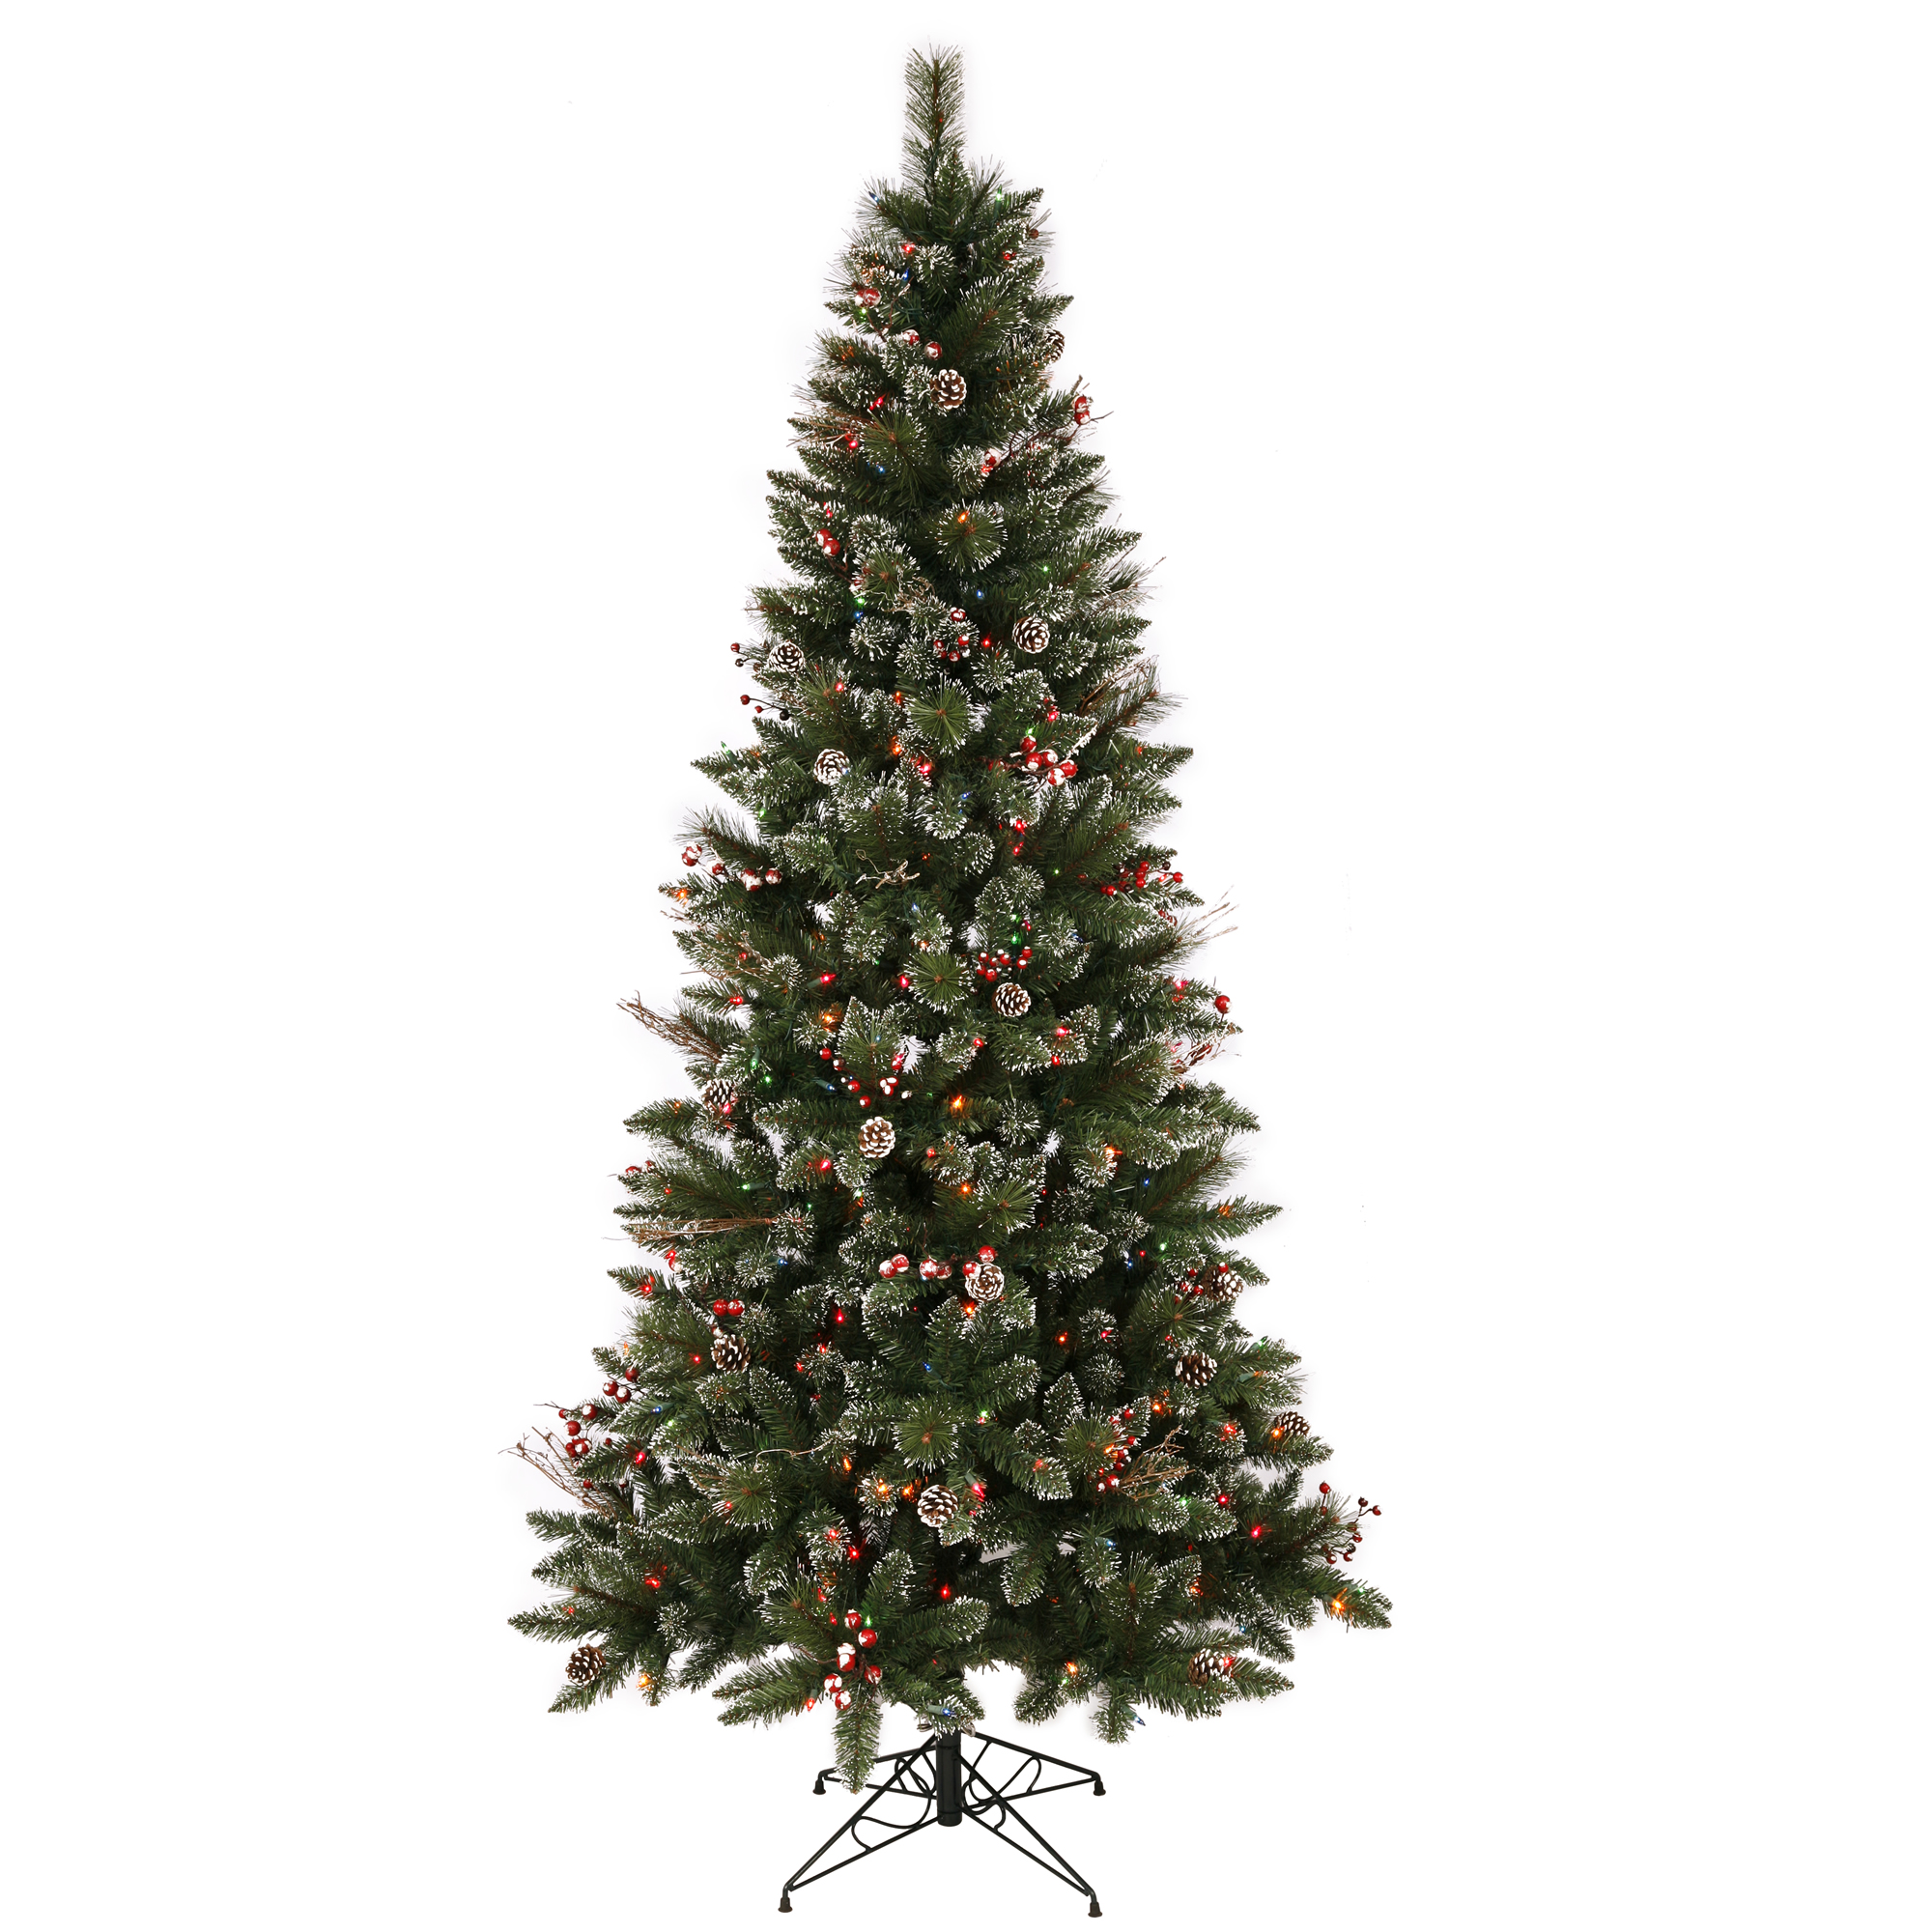 "Vickerman Artificial Christmas Tree 6' x 36"" SnowTip Berry Dura-lit LED 250 Multi-color Lights"